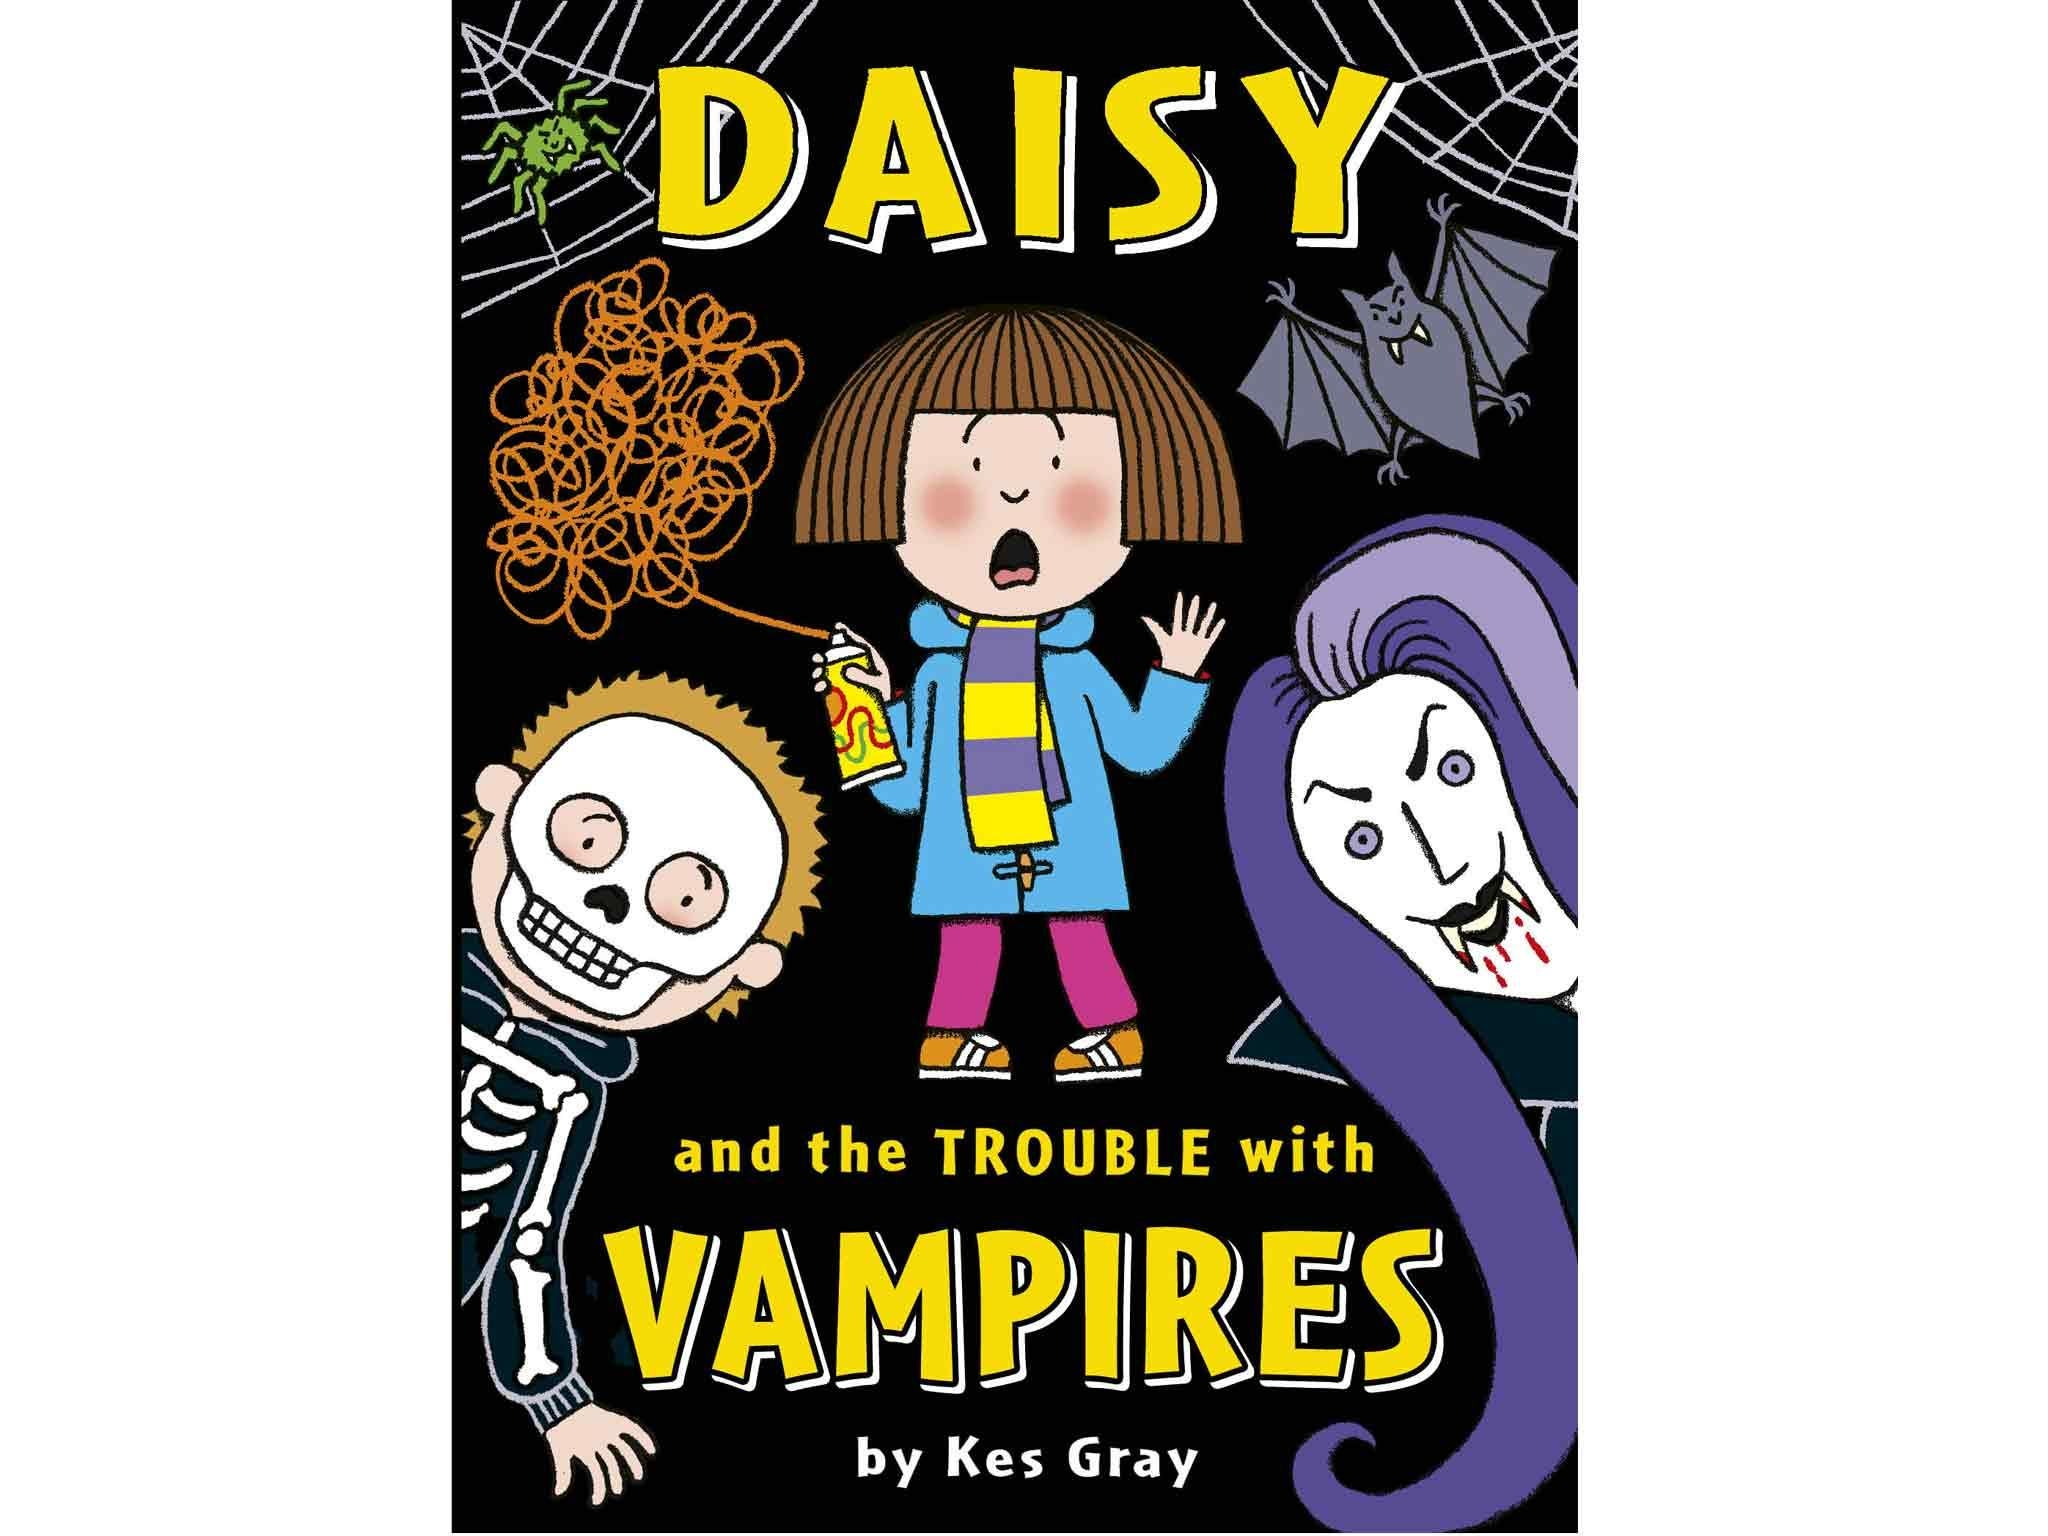 12 best kids' books for dyslexic and reluctant readers | The Independent